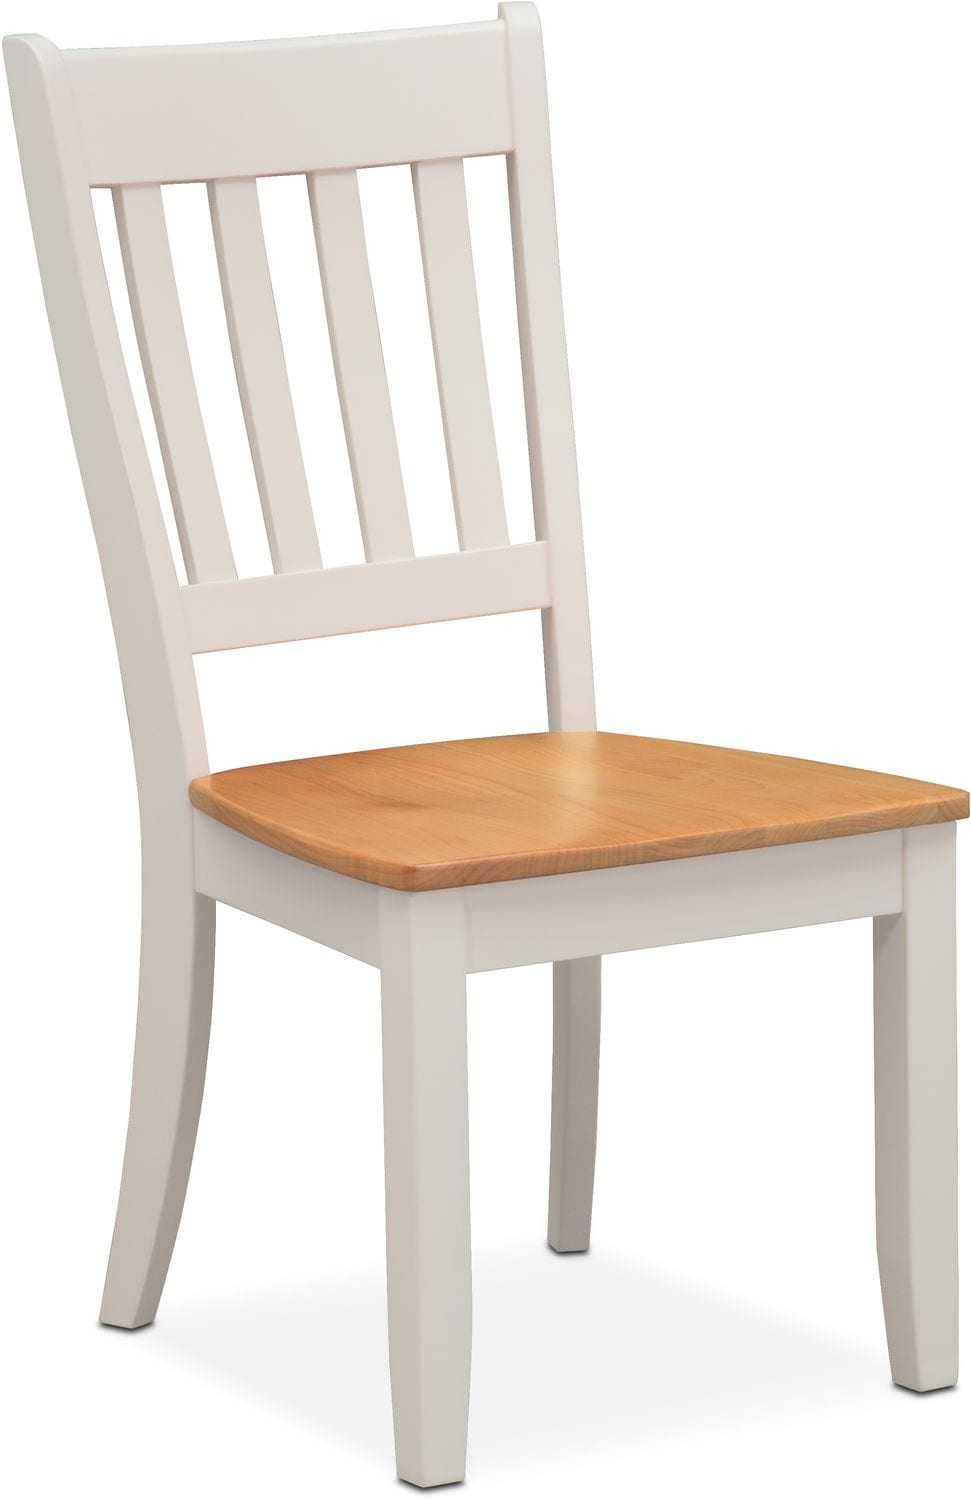 Nantucket Slat-Back Chair - Maple and White